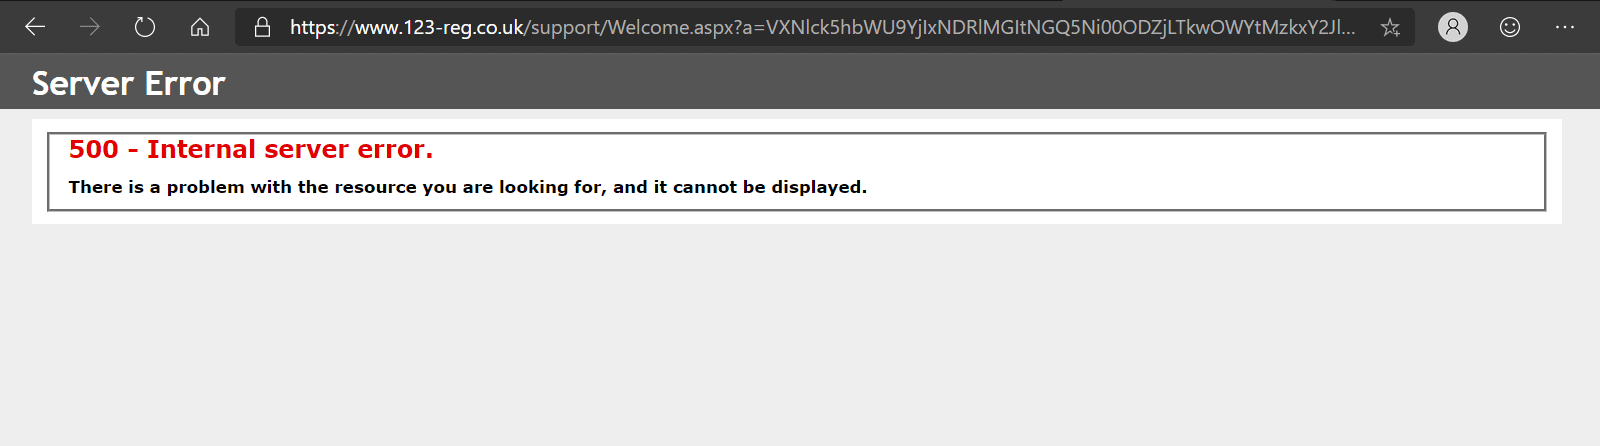 Errors sometimes occur when trying to contact support